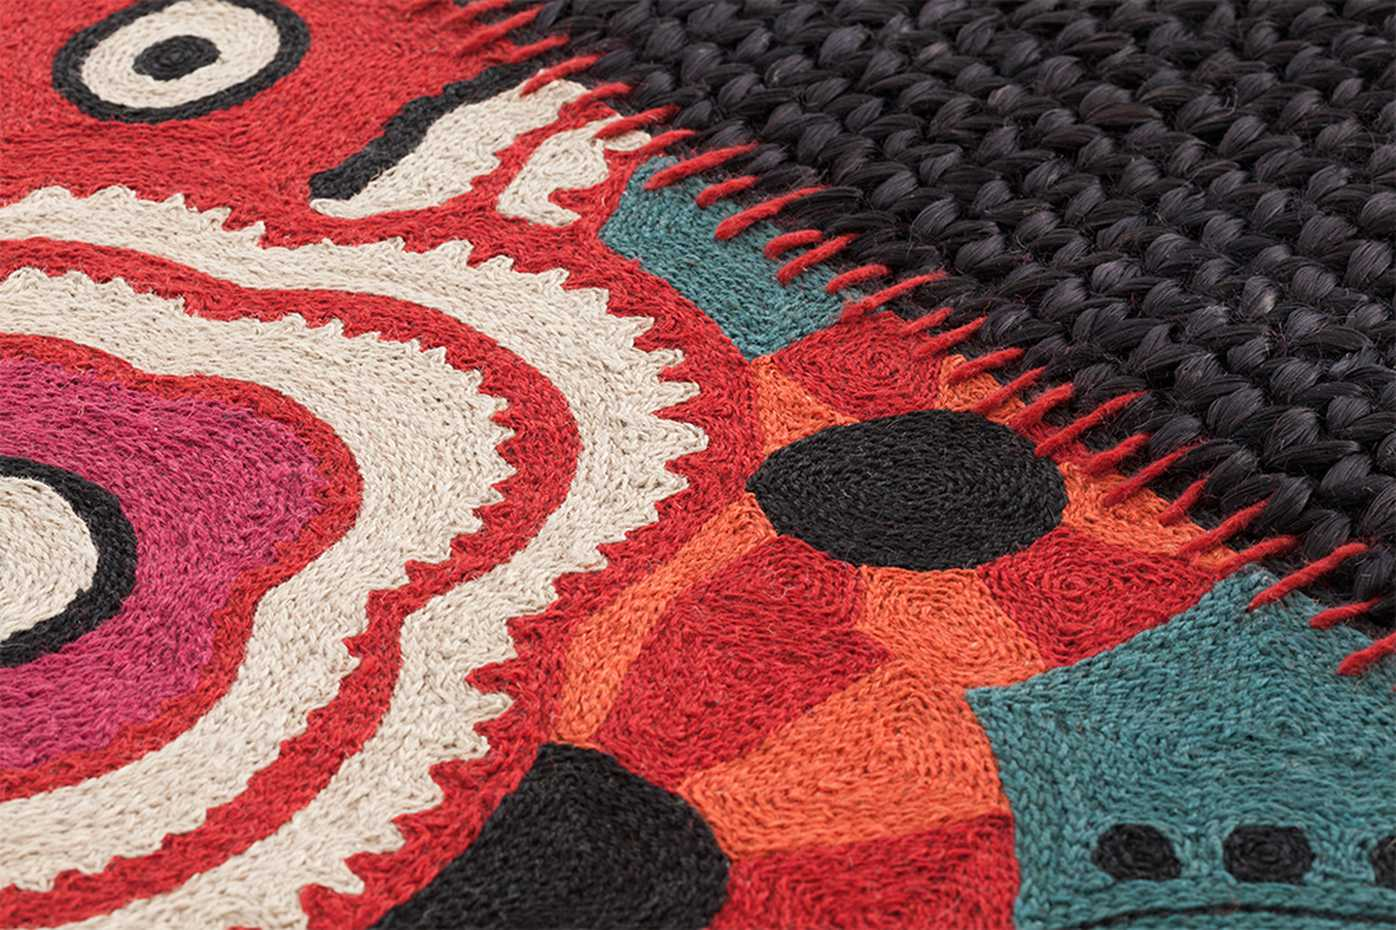 Rustic Chic Rugs by Gan Rugs product image 5